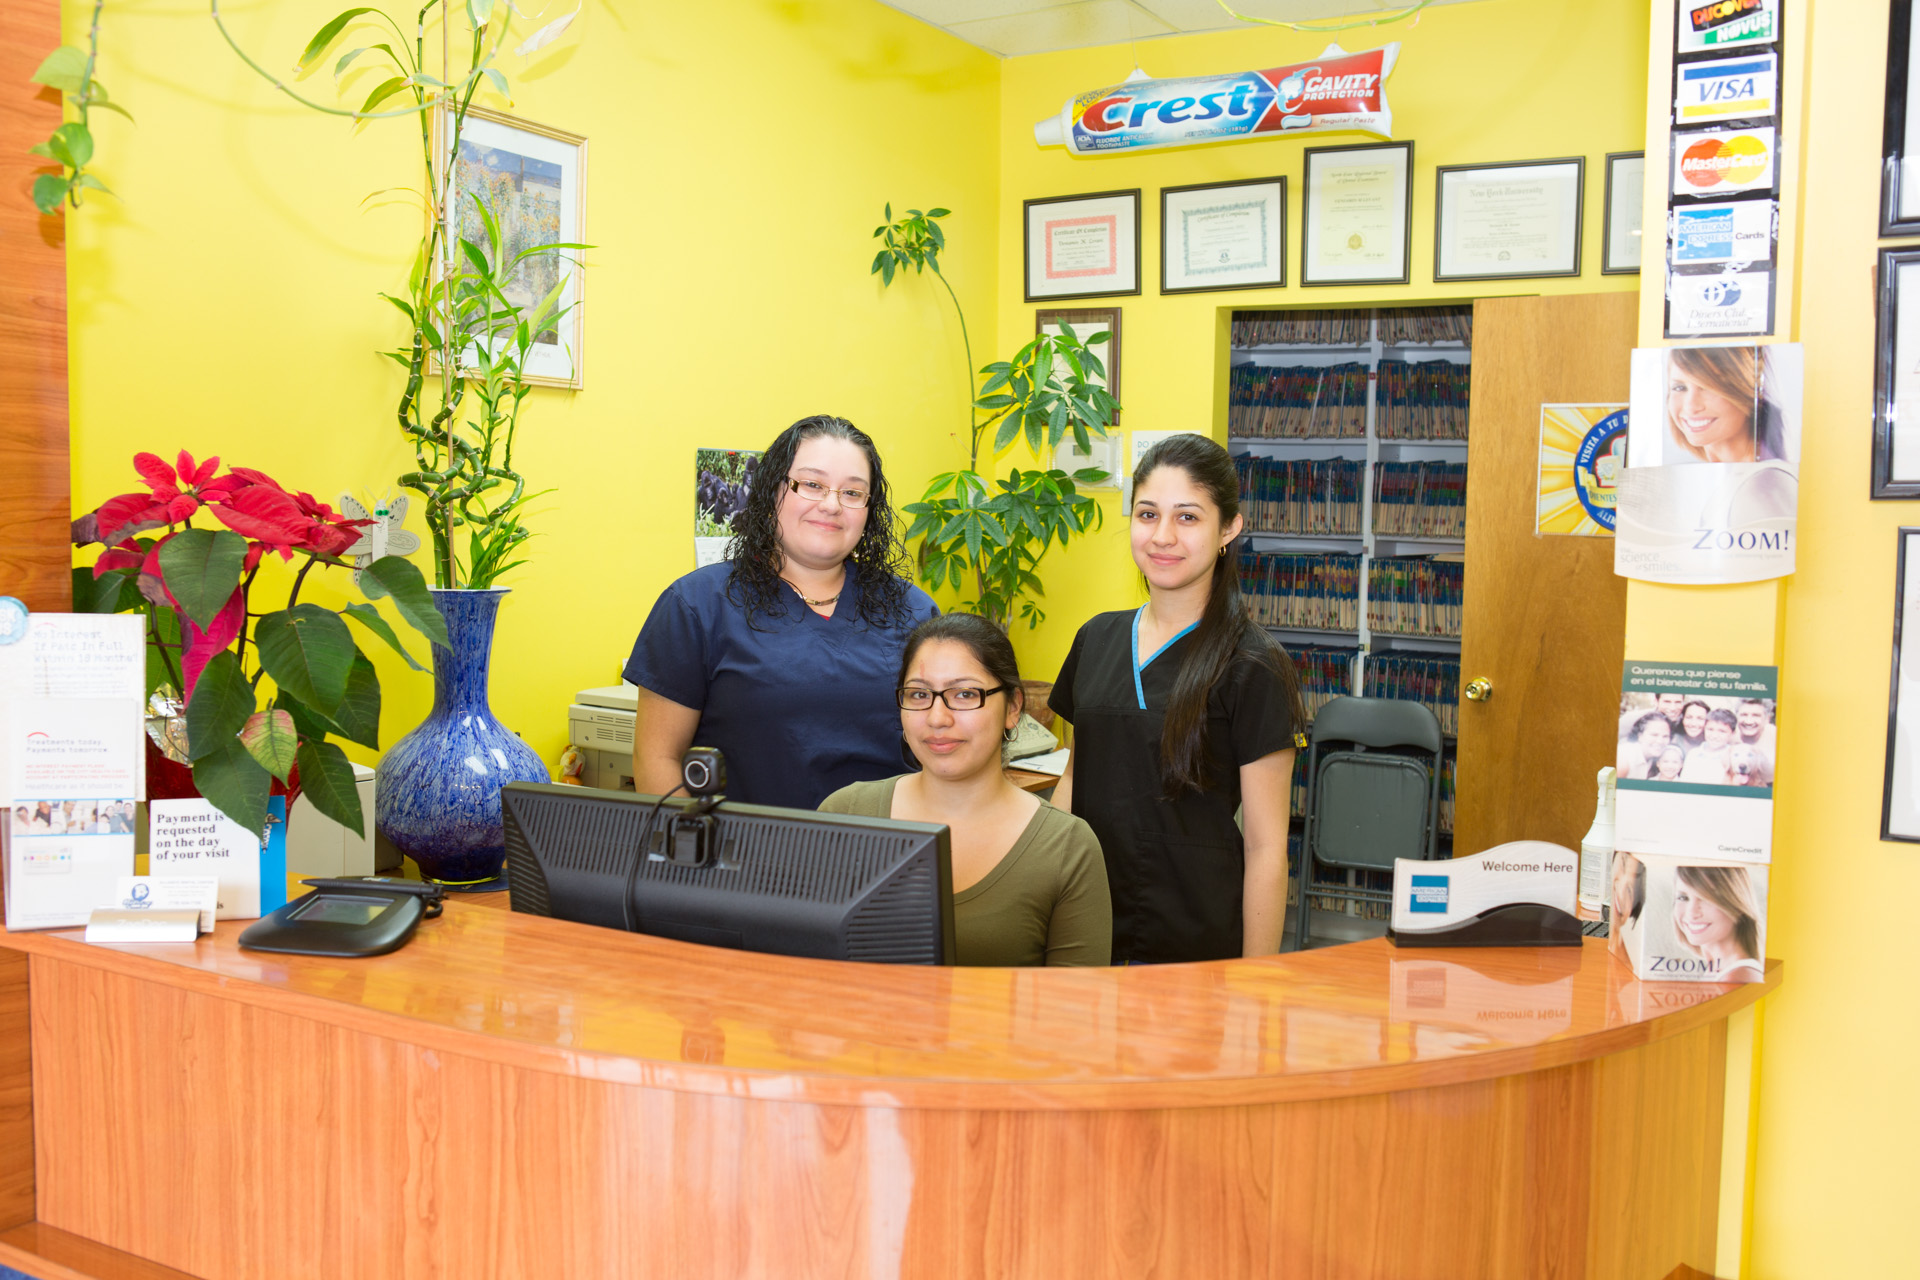 Our Friendly office staff